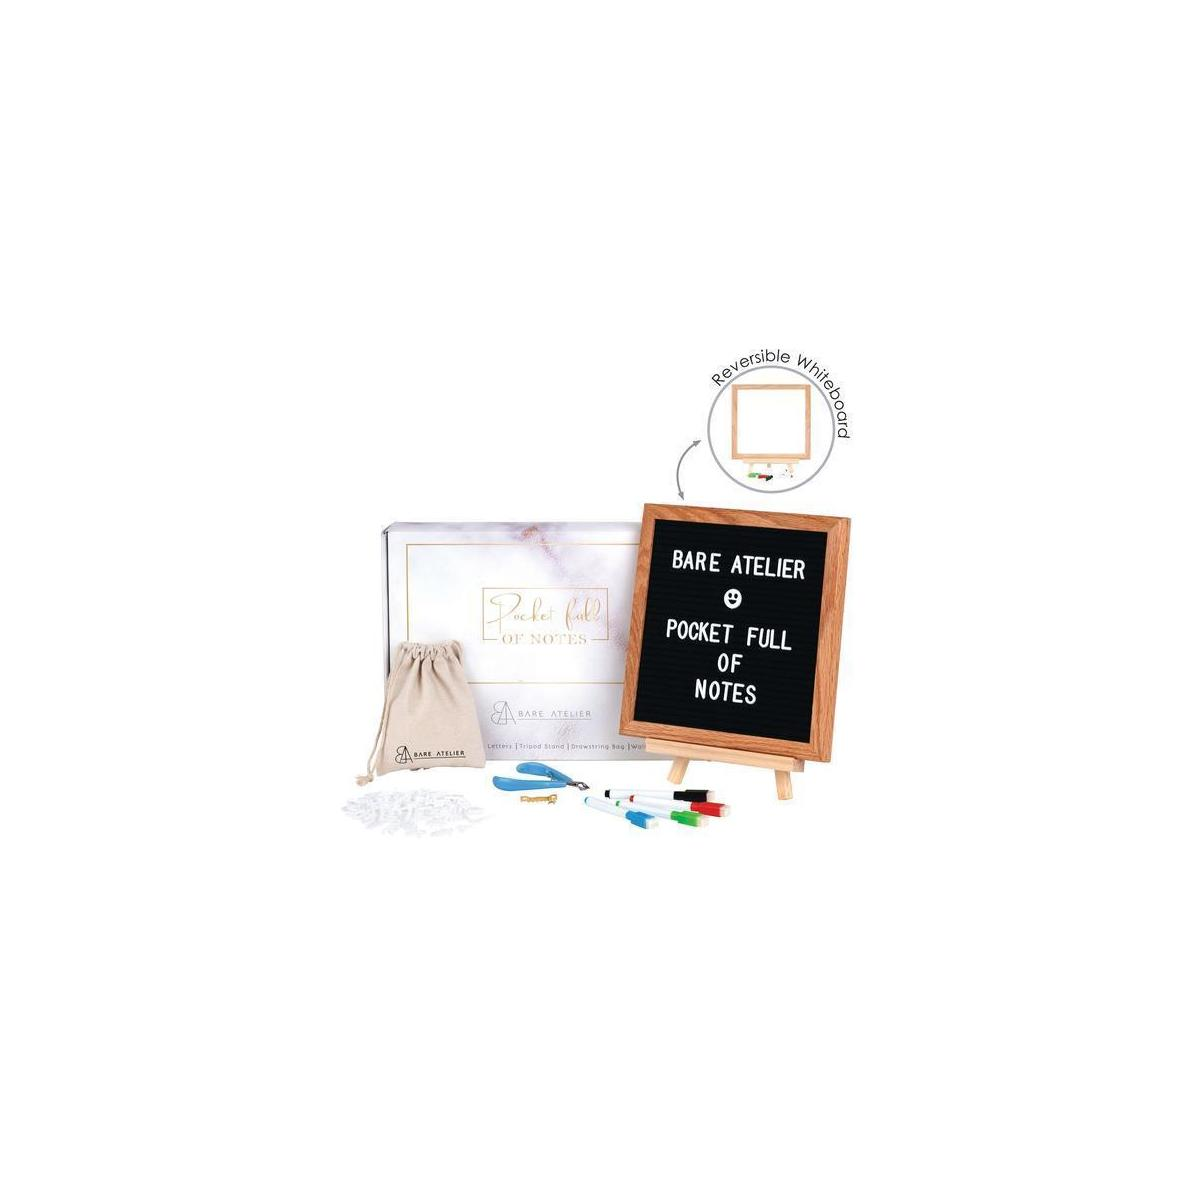 "2-in-1 Double-sided Letter Board & Whiteboard with Stand  10x10"" Message Board, 340 Characters, Wall Mount, Letter Cutting Tool by Bare Atelier"